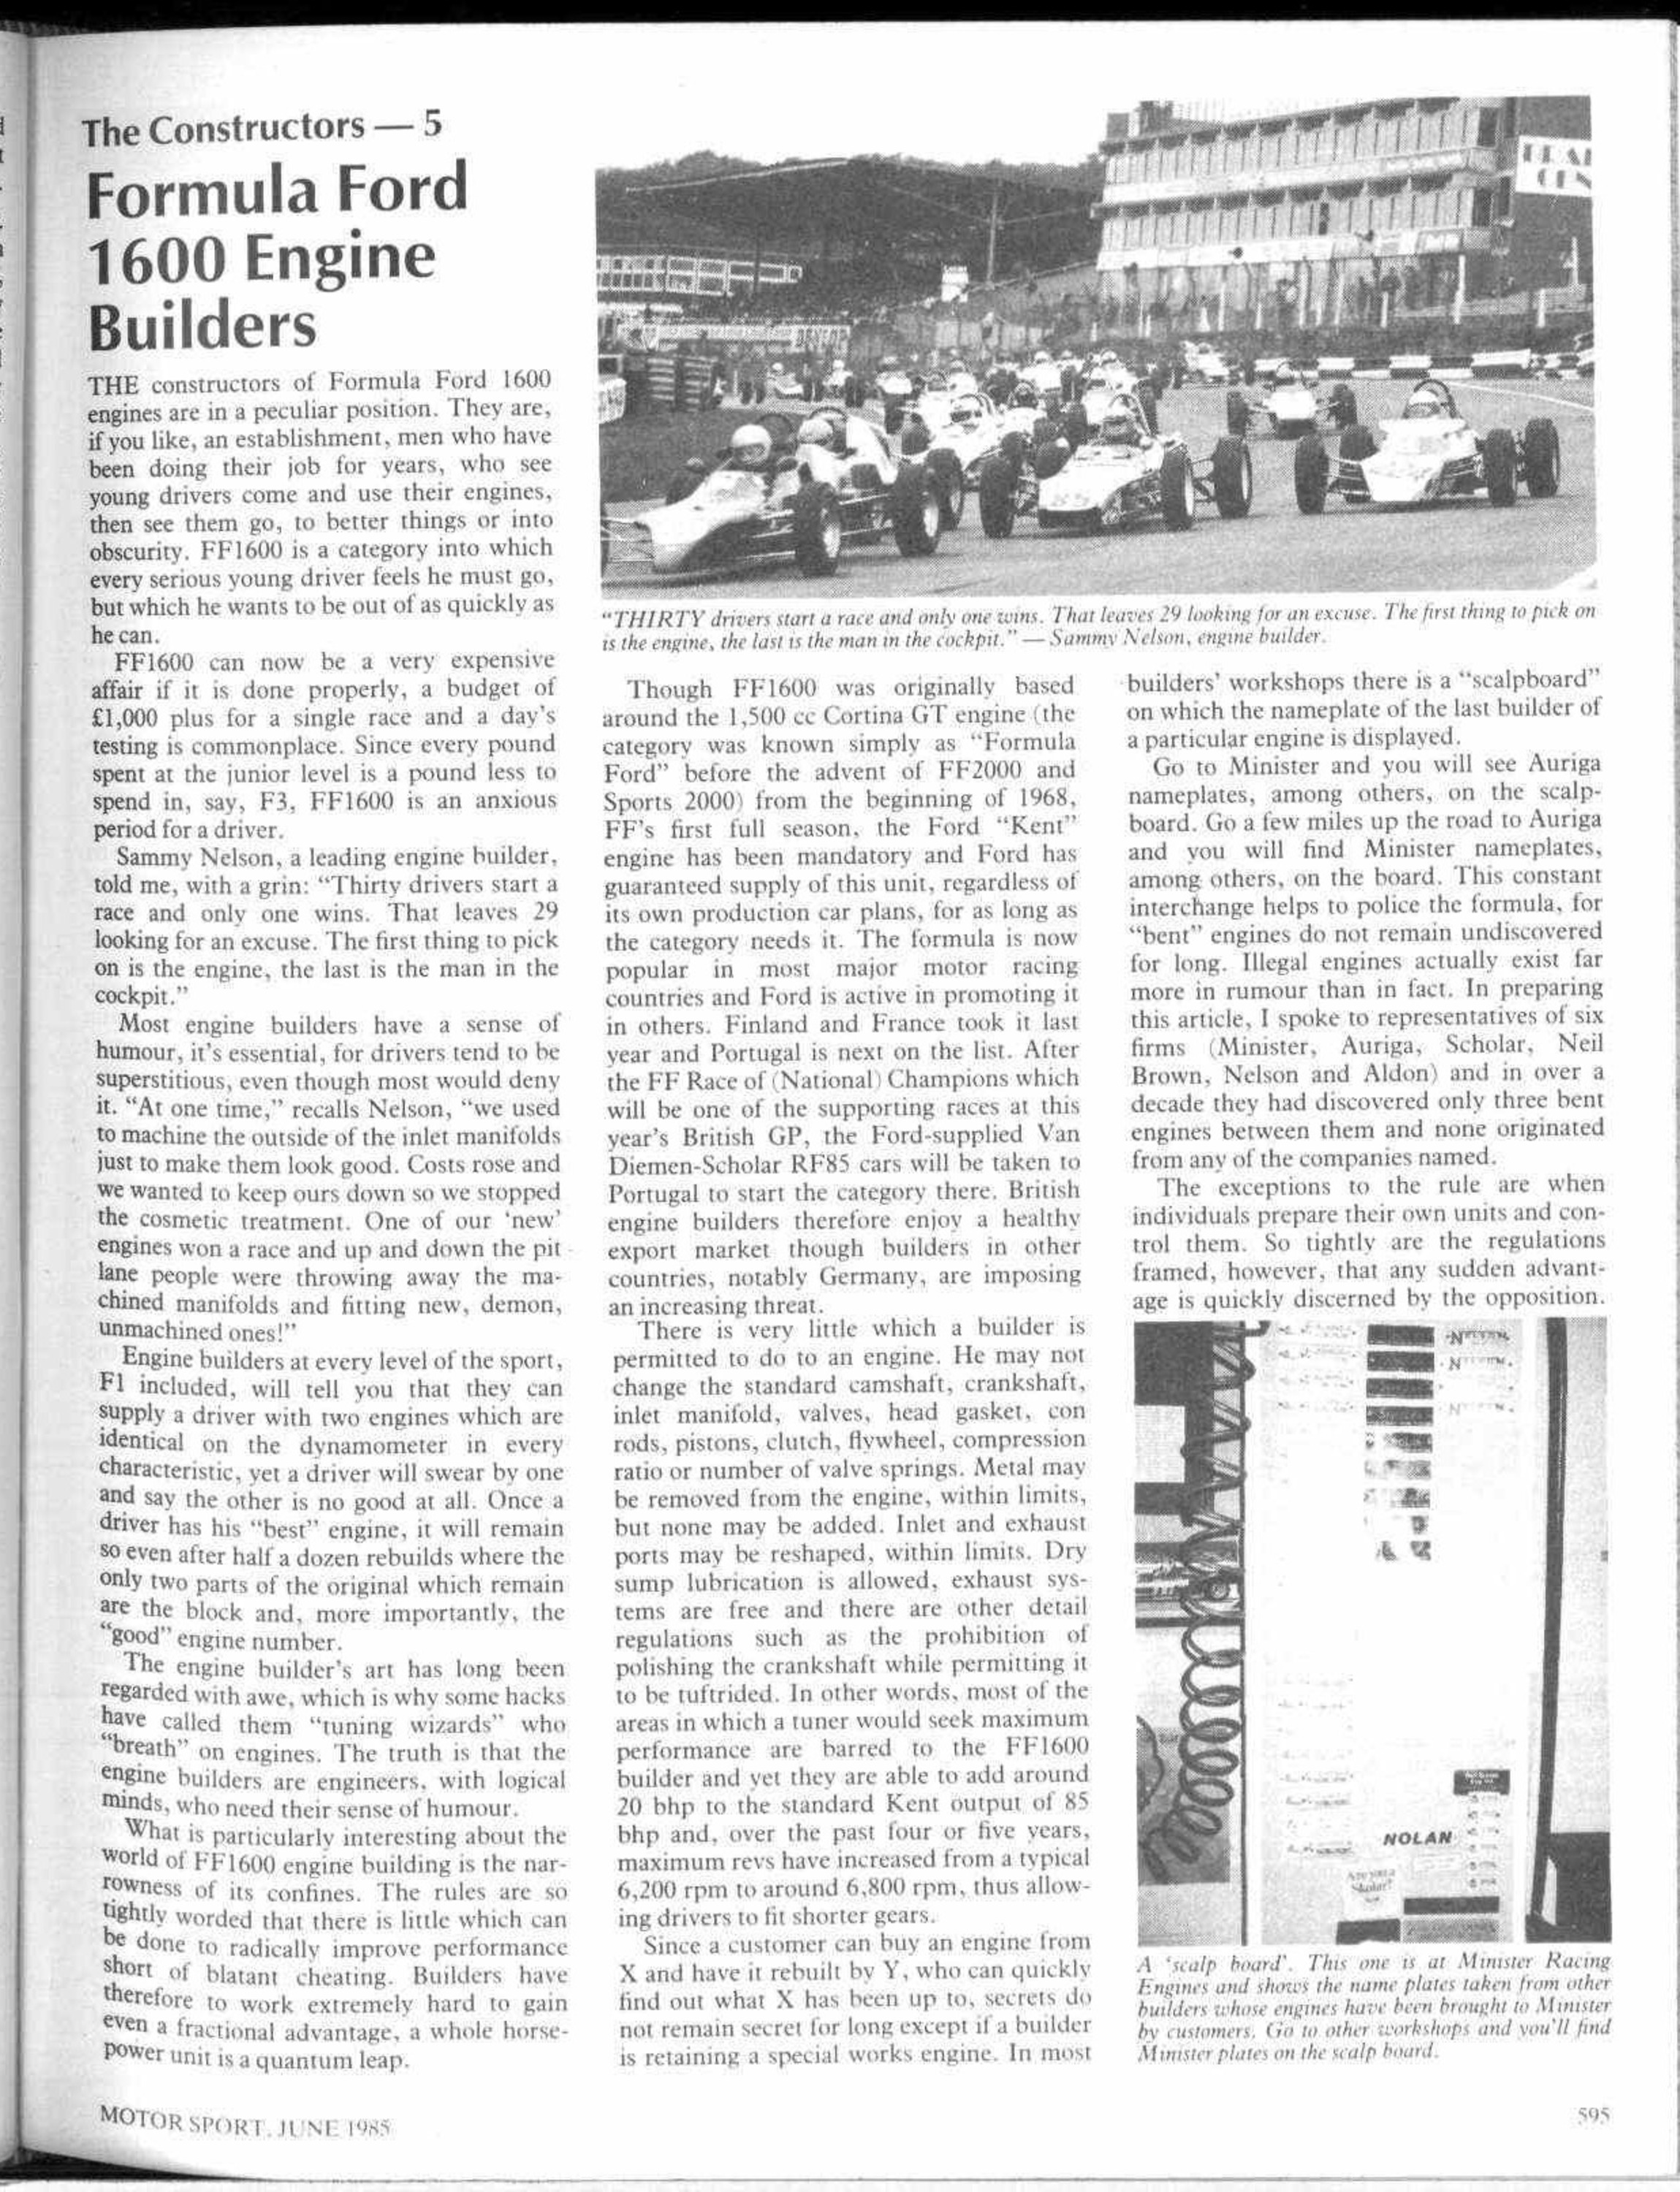 The Constructors - 5 Formula Ford 1600 Engine Builders